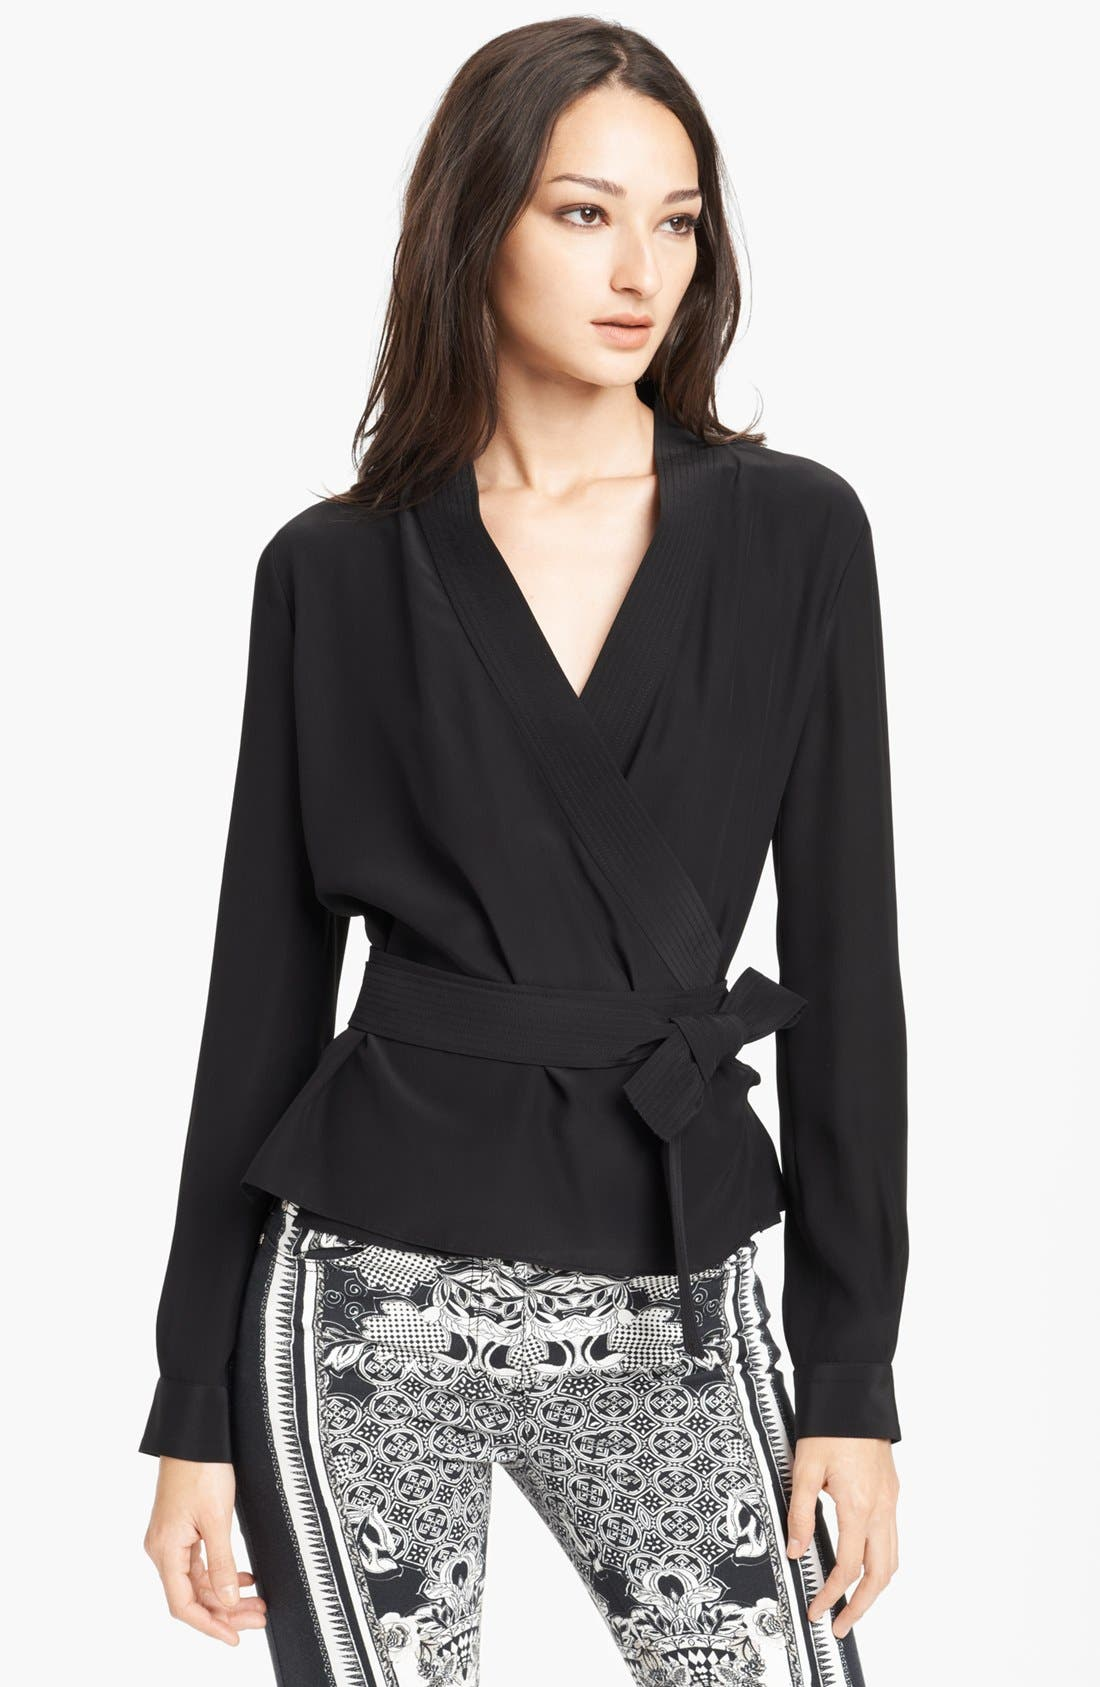 Alternate Image 1 Selected - Roberto Cavalli Crêpe de Chine Kimono Blouse